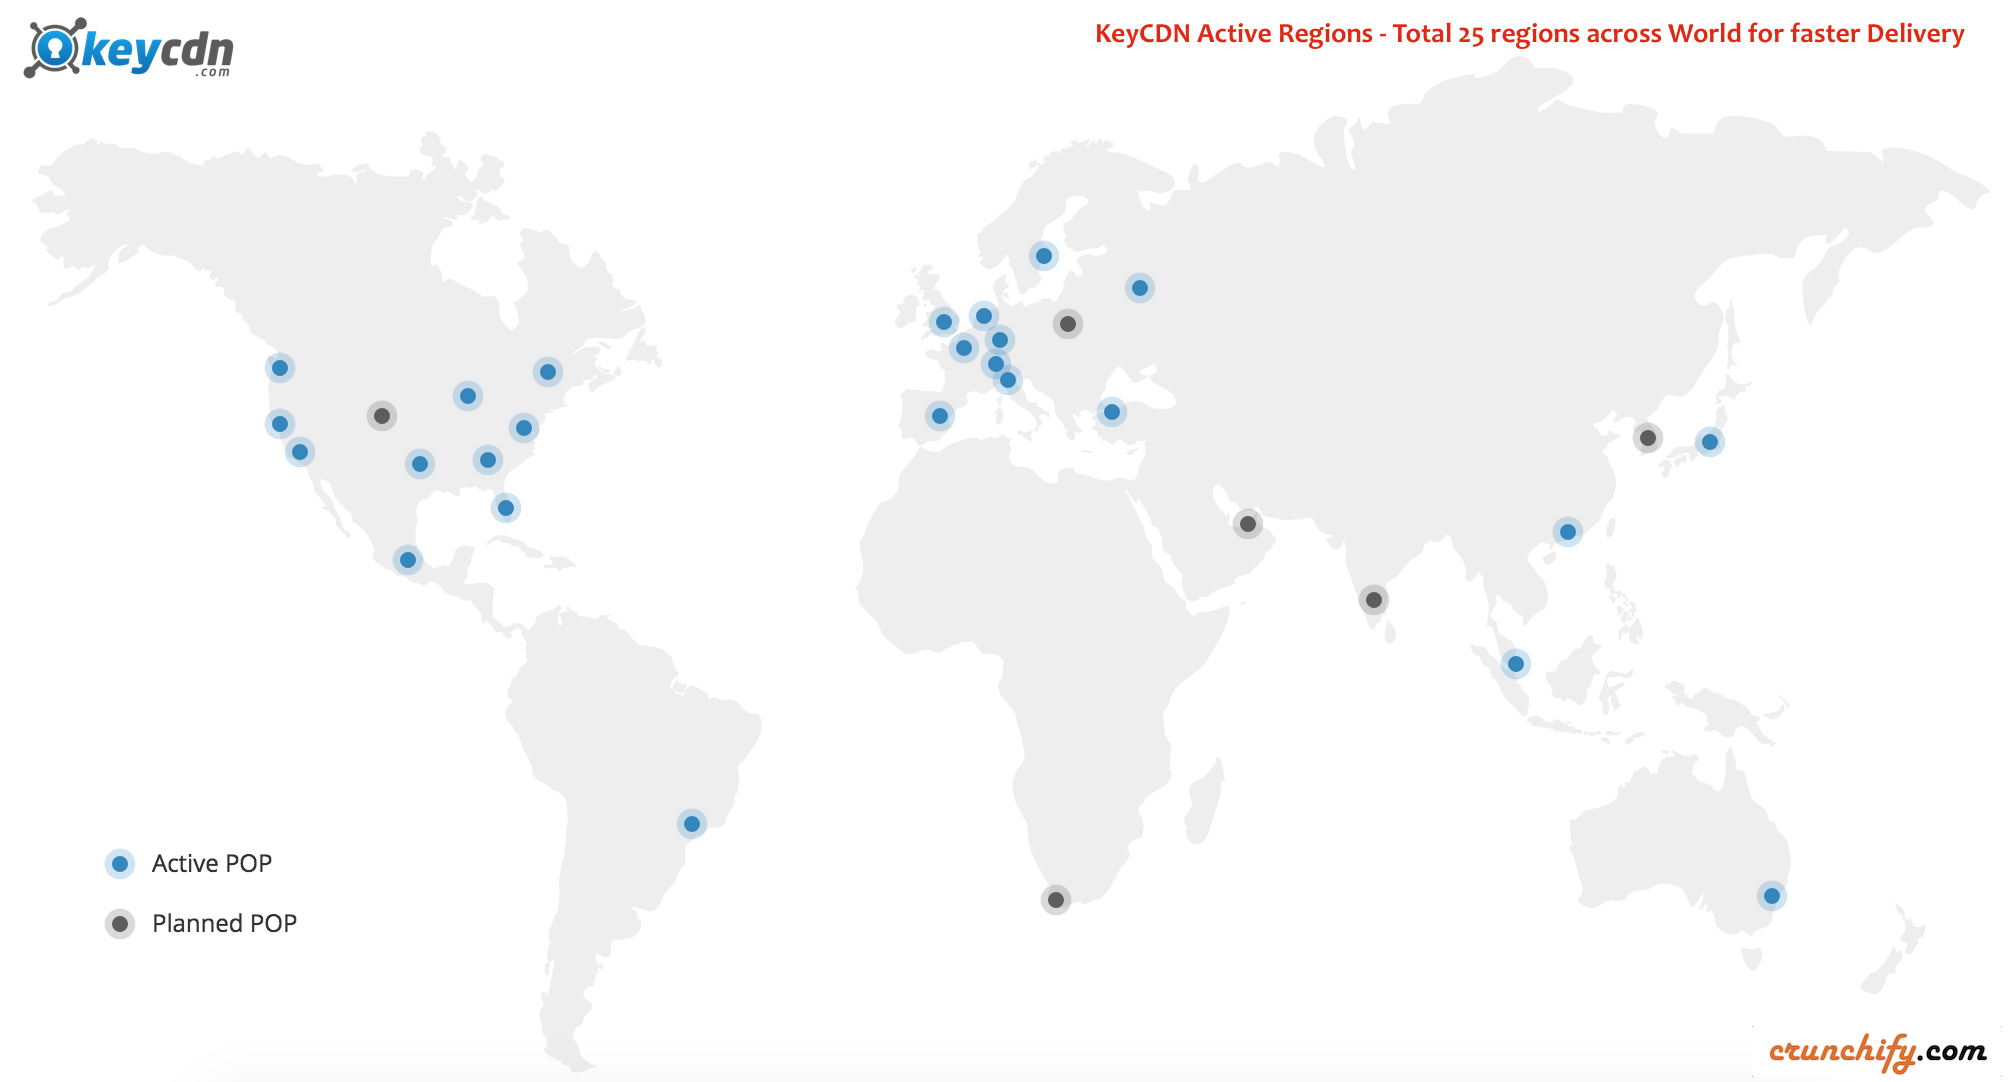 KeyCDN Active Regions - Total 25 regions across World for faster Delivery